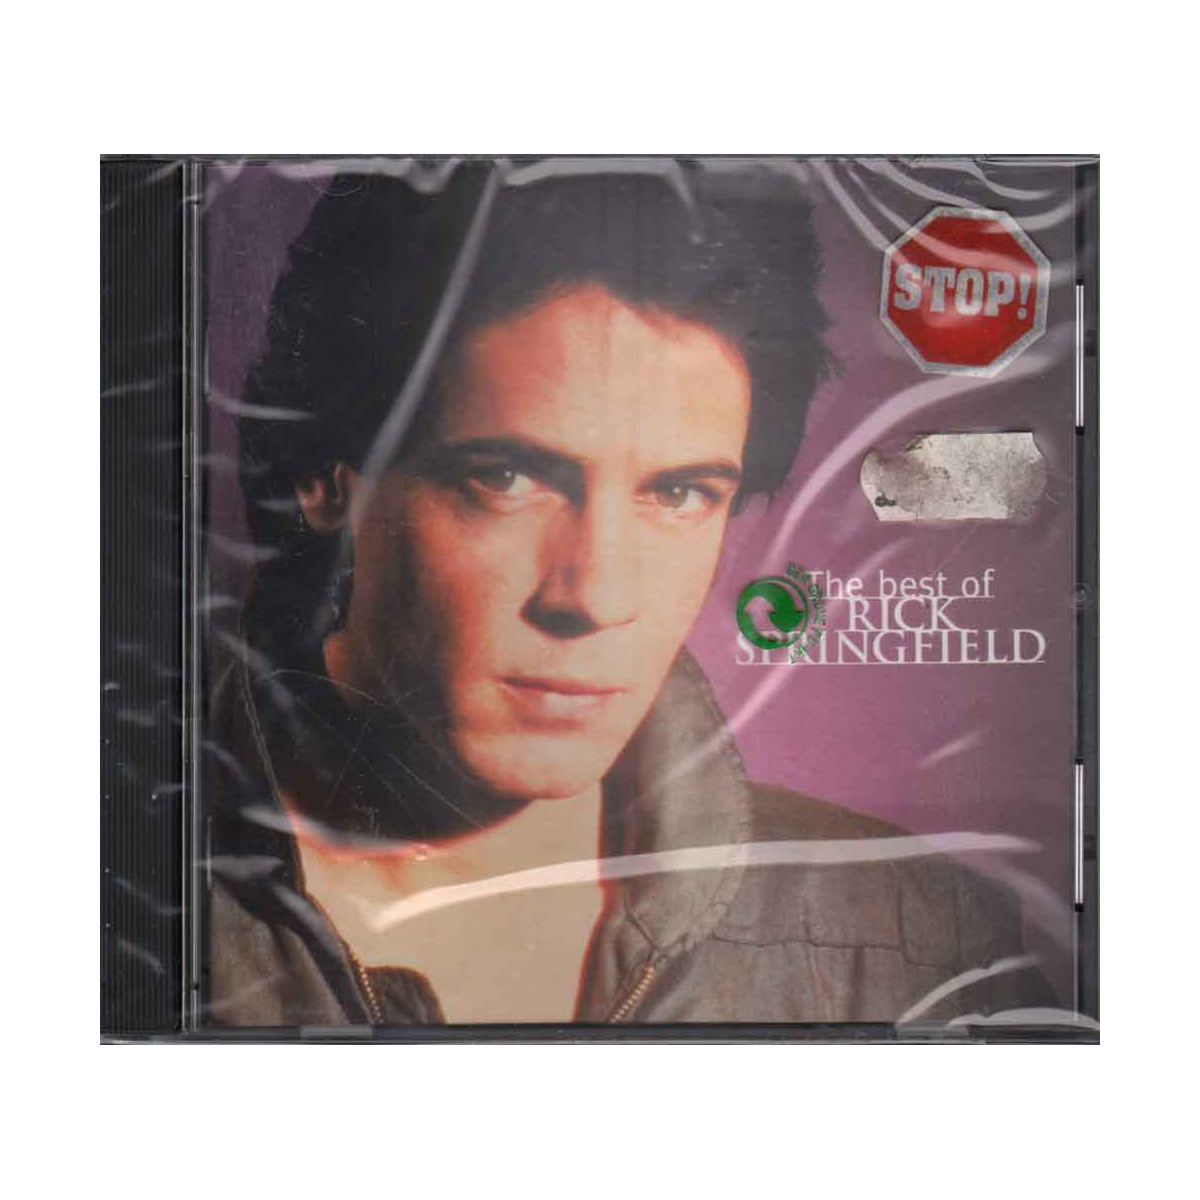 Rick Springfield  CD The Best Of Rick Springfield Sigillato 0078636779720